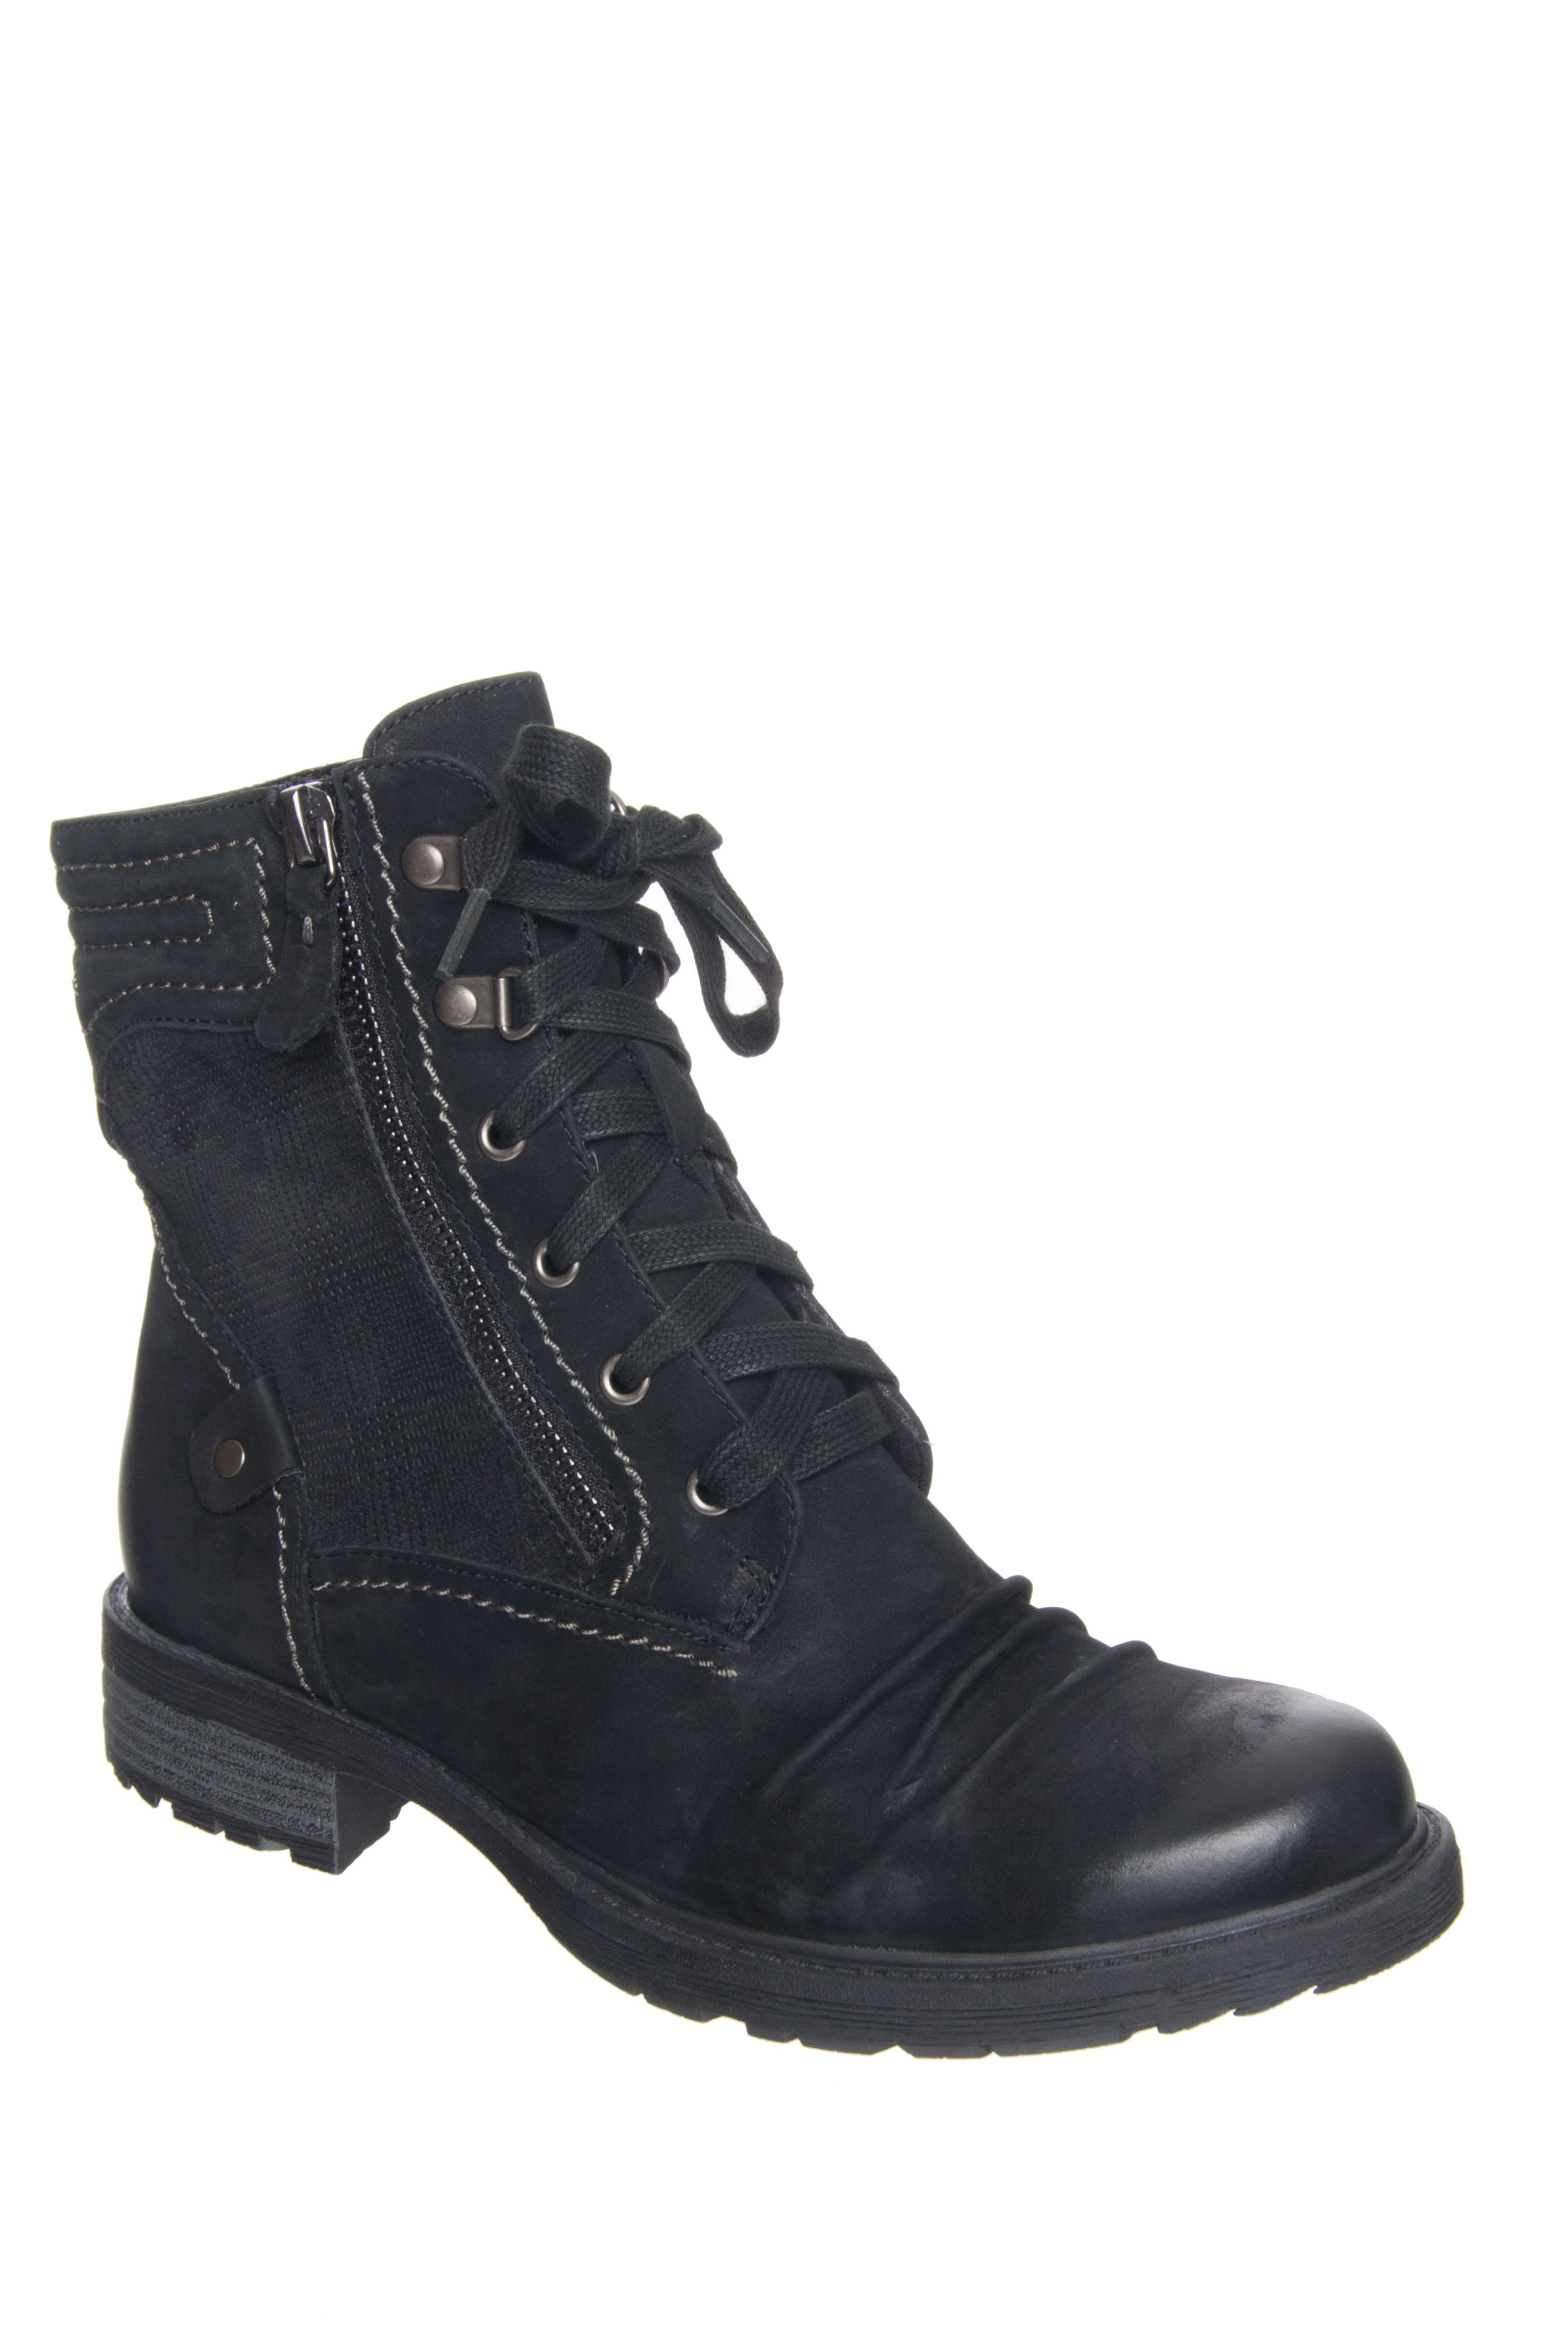 Earth Summit Lace Up Boots - Black